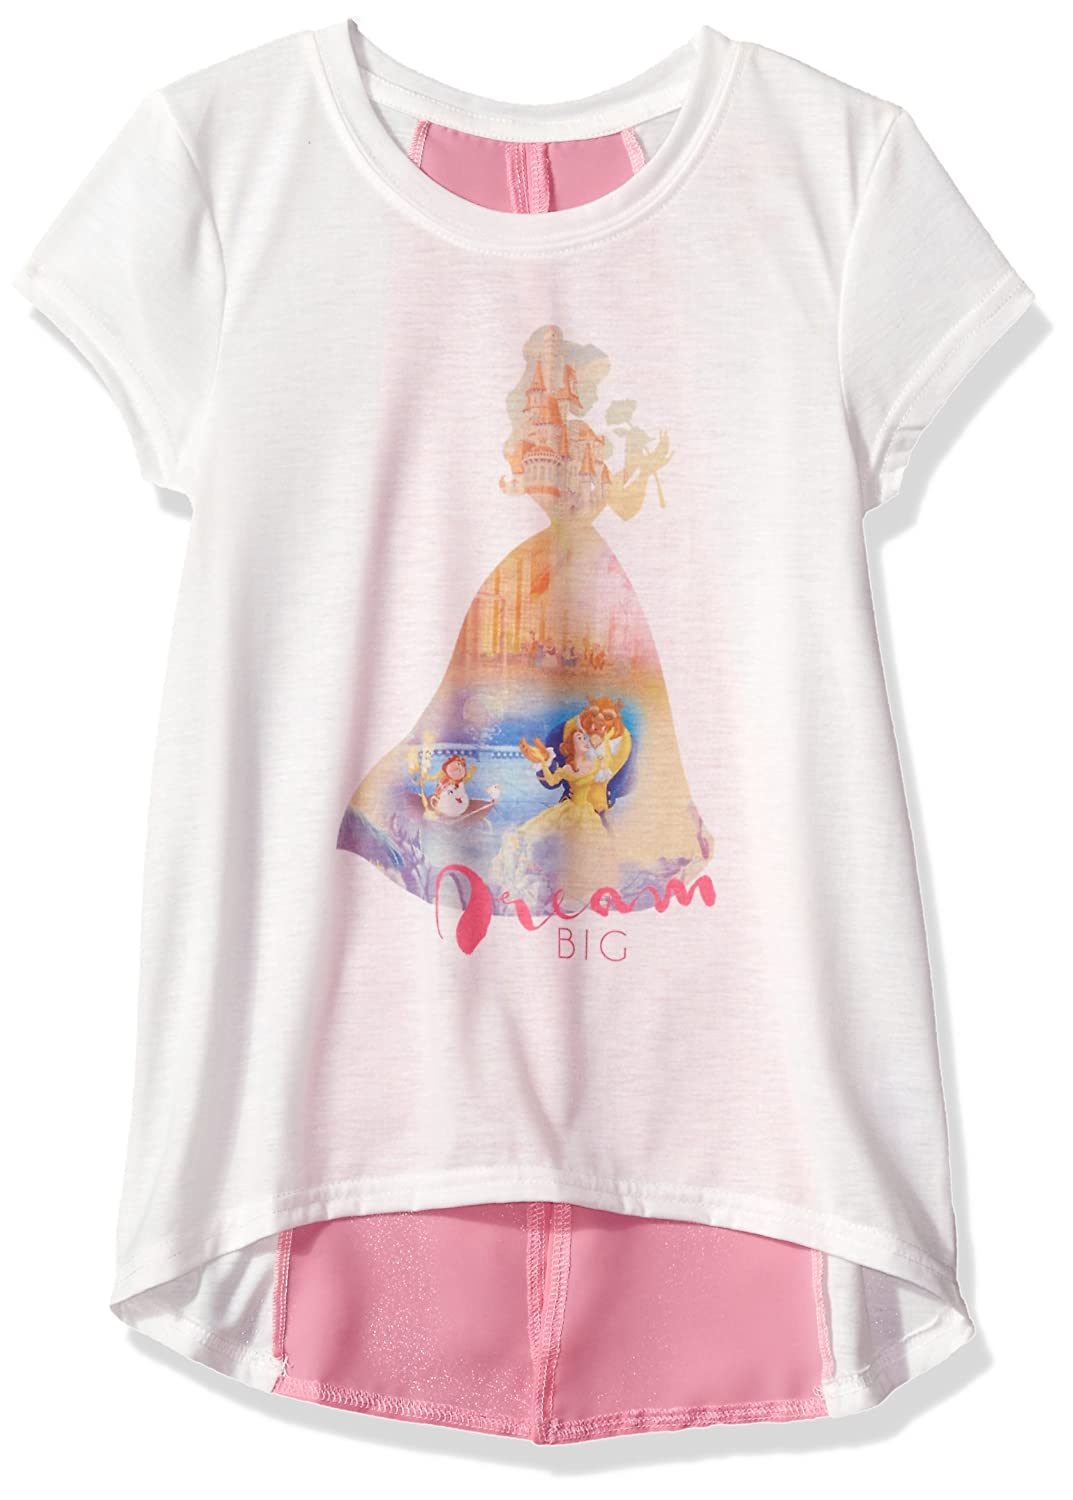 657a9fdc5 Amazon.com: Disney Girls' Beauty and the Beast Belle Chiffon Back T-Shirt:  Clothing